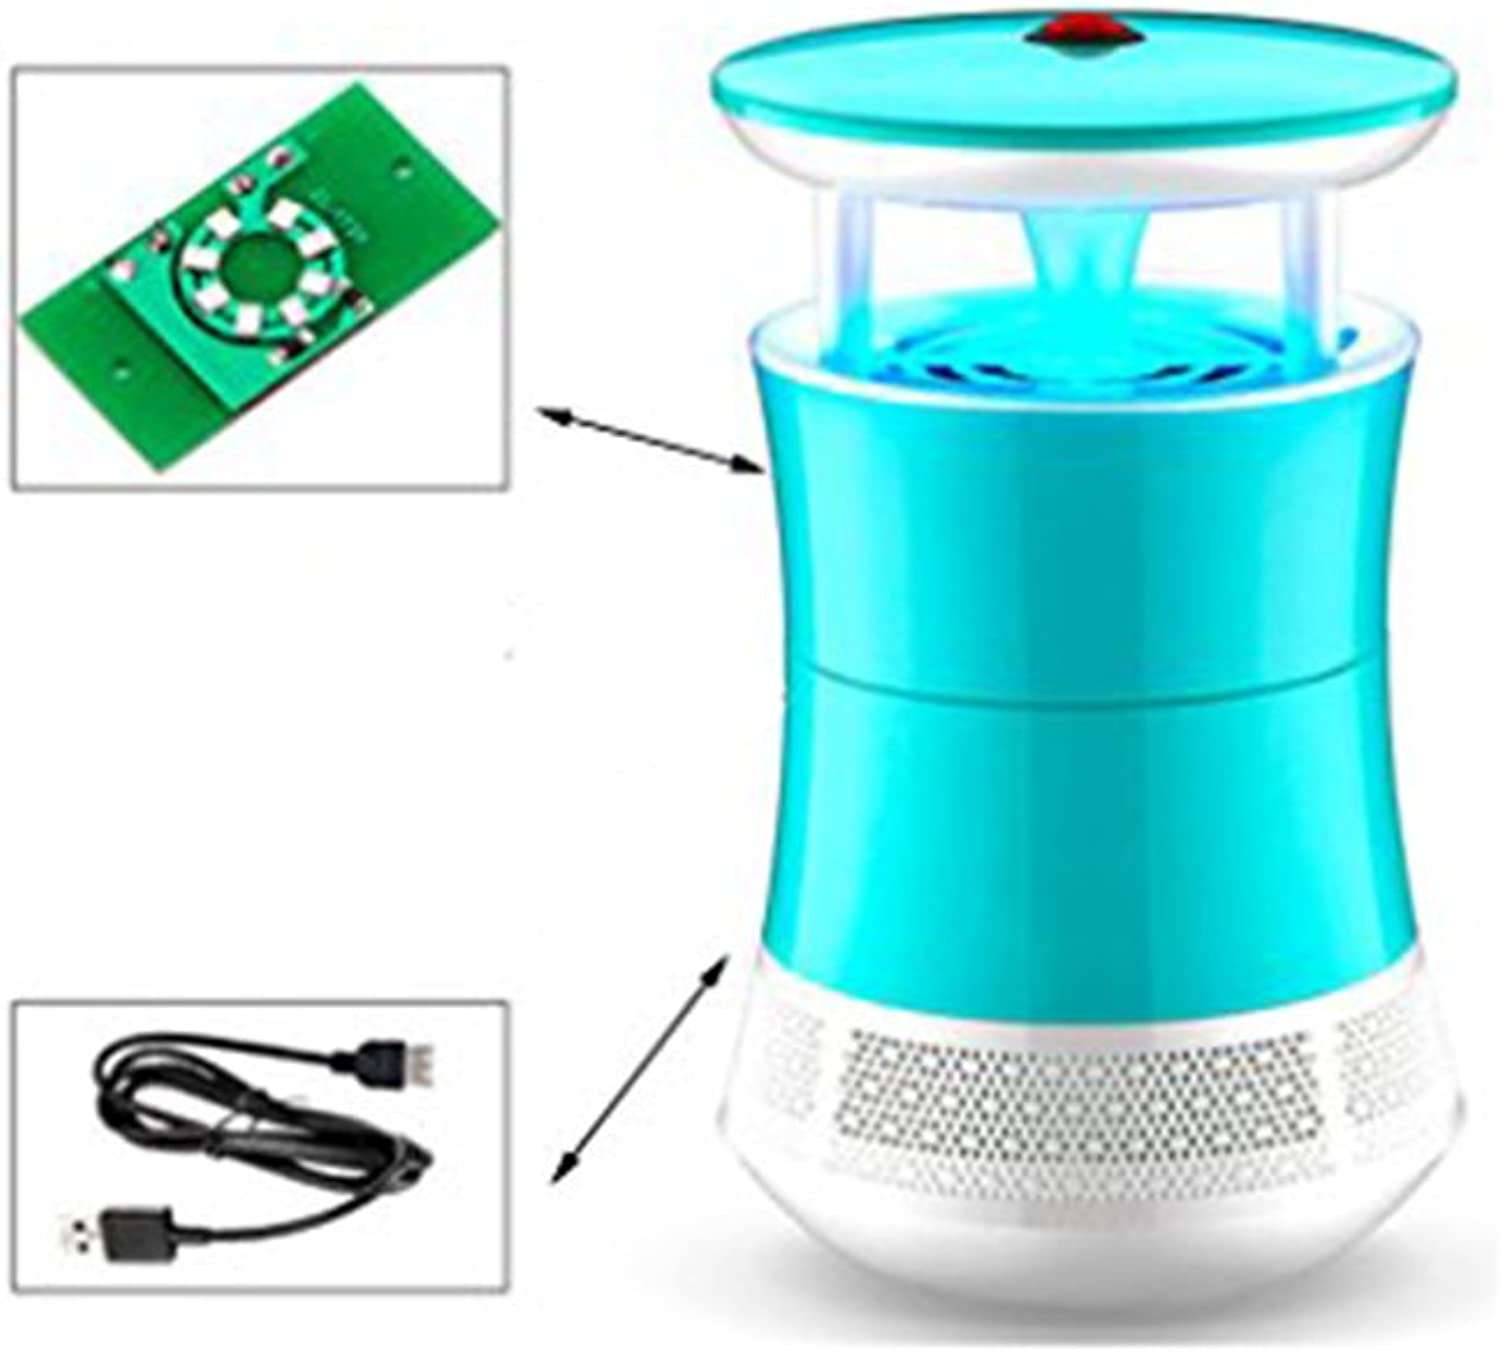 Indoor Mosquito Killing Lamp Insect Killer,Electronic LED Ultrapurple Light Bug Zapper Photocatalyst UV Mosquito Trap Killer for Indoor Home Office Use,A